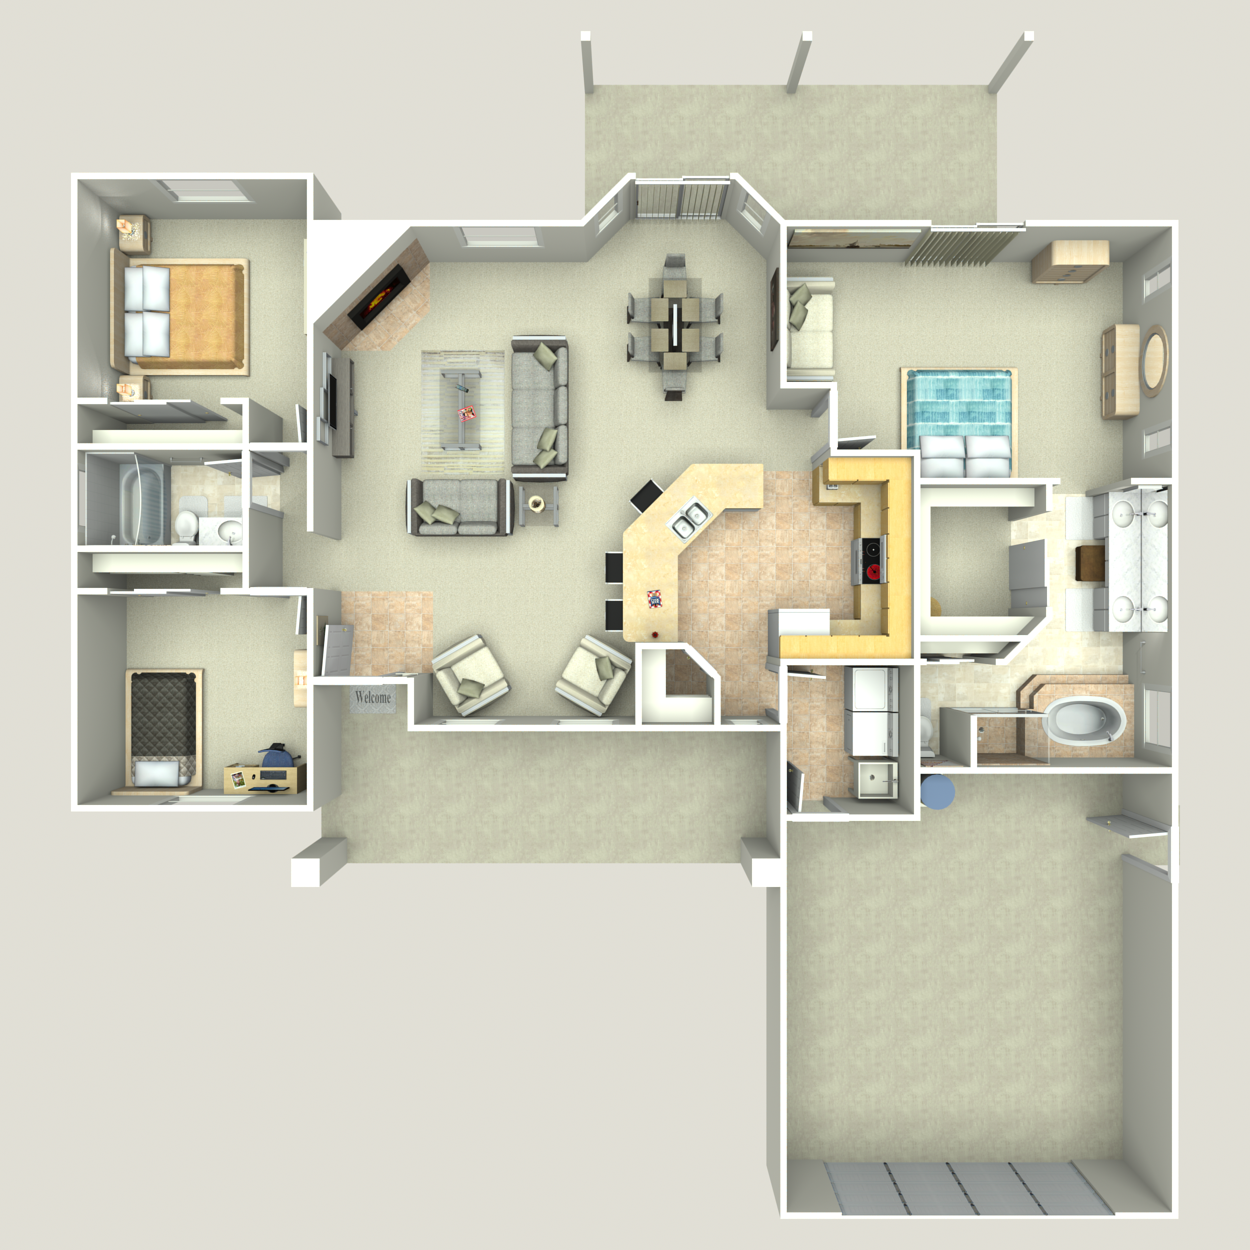 Floor plan image of Primo